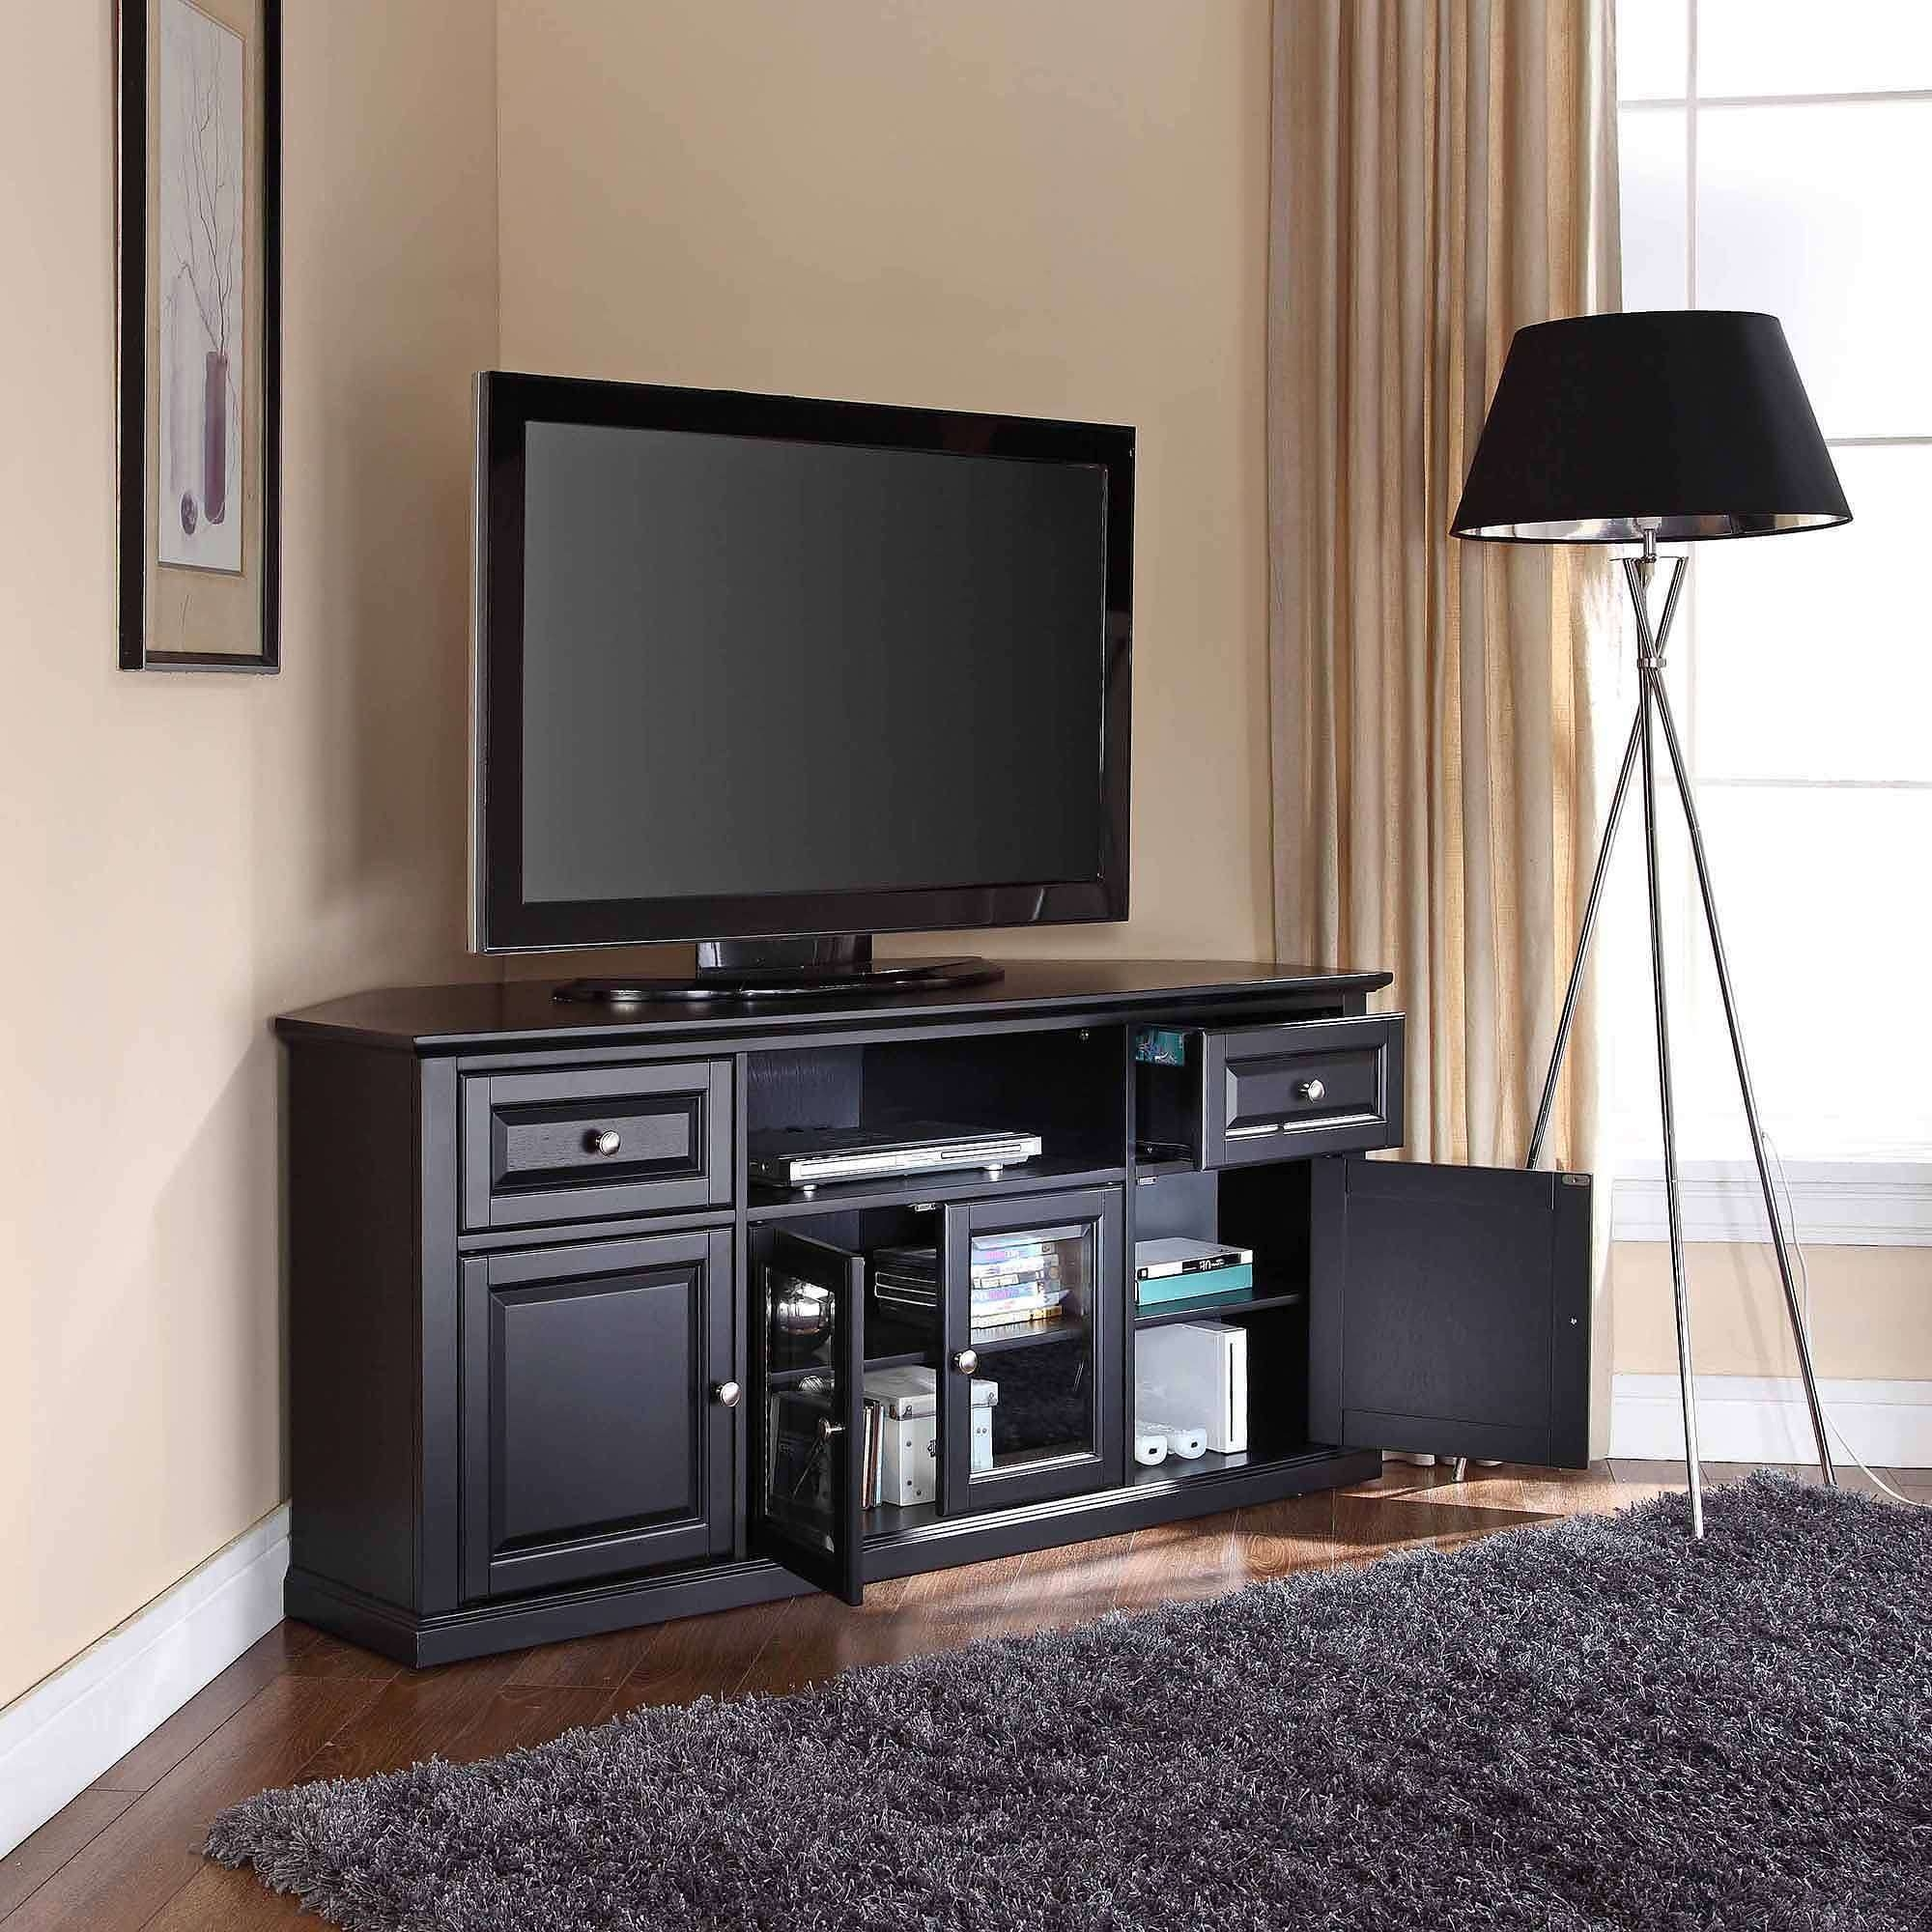 "Crosley Furniture Corner Tv Stand For Tvs Up To 60"" – Walmart With Regard To Tv Stands Corner Units (View 7 of 15)"